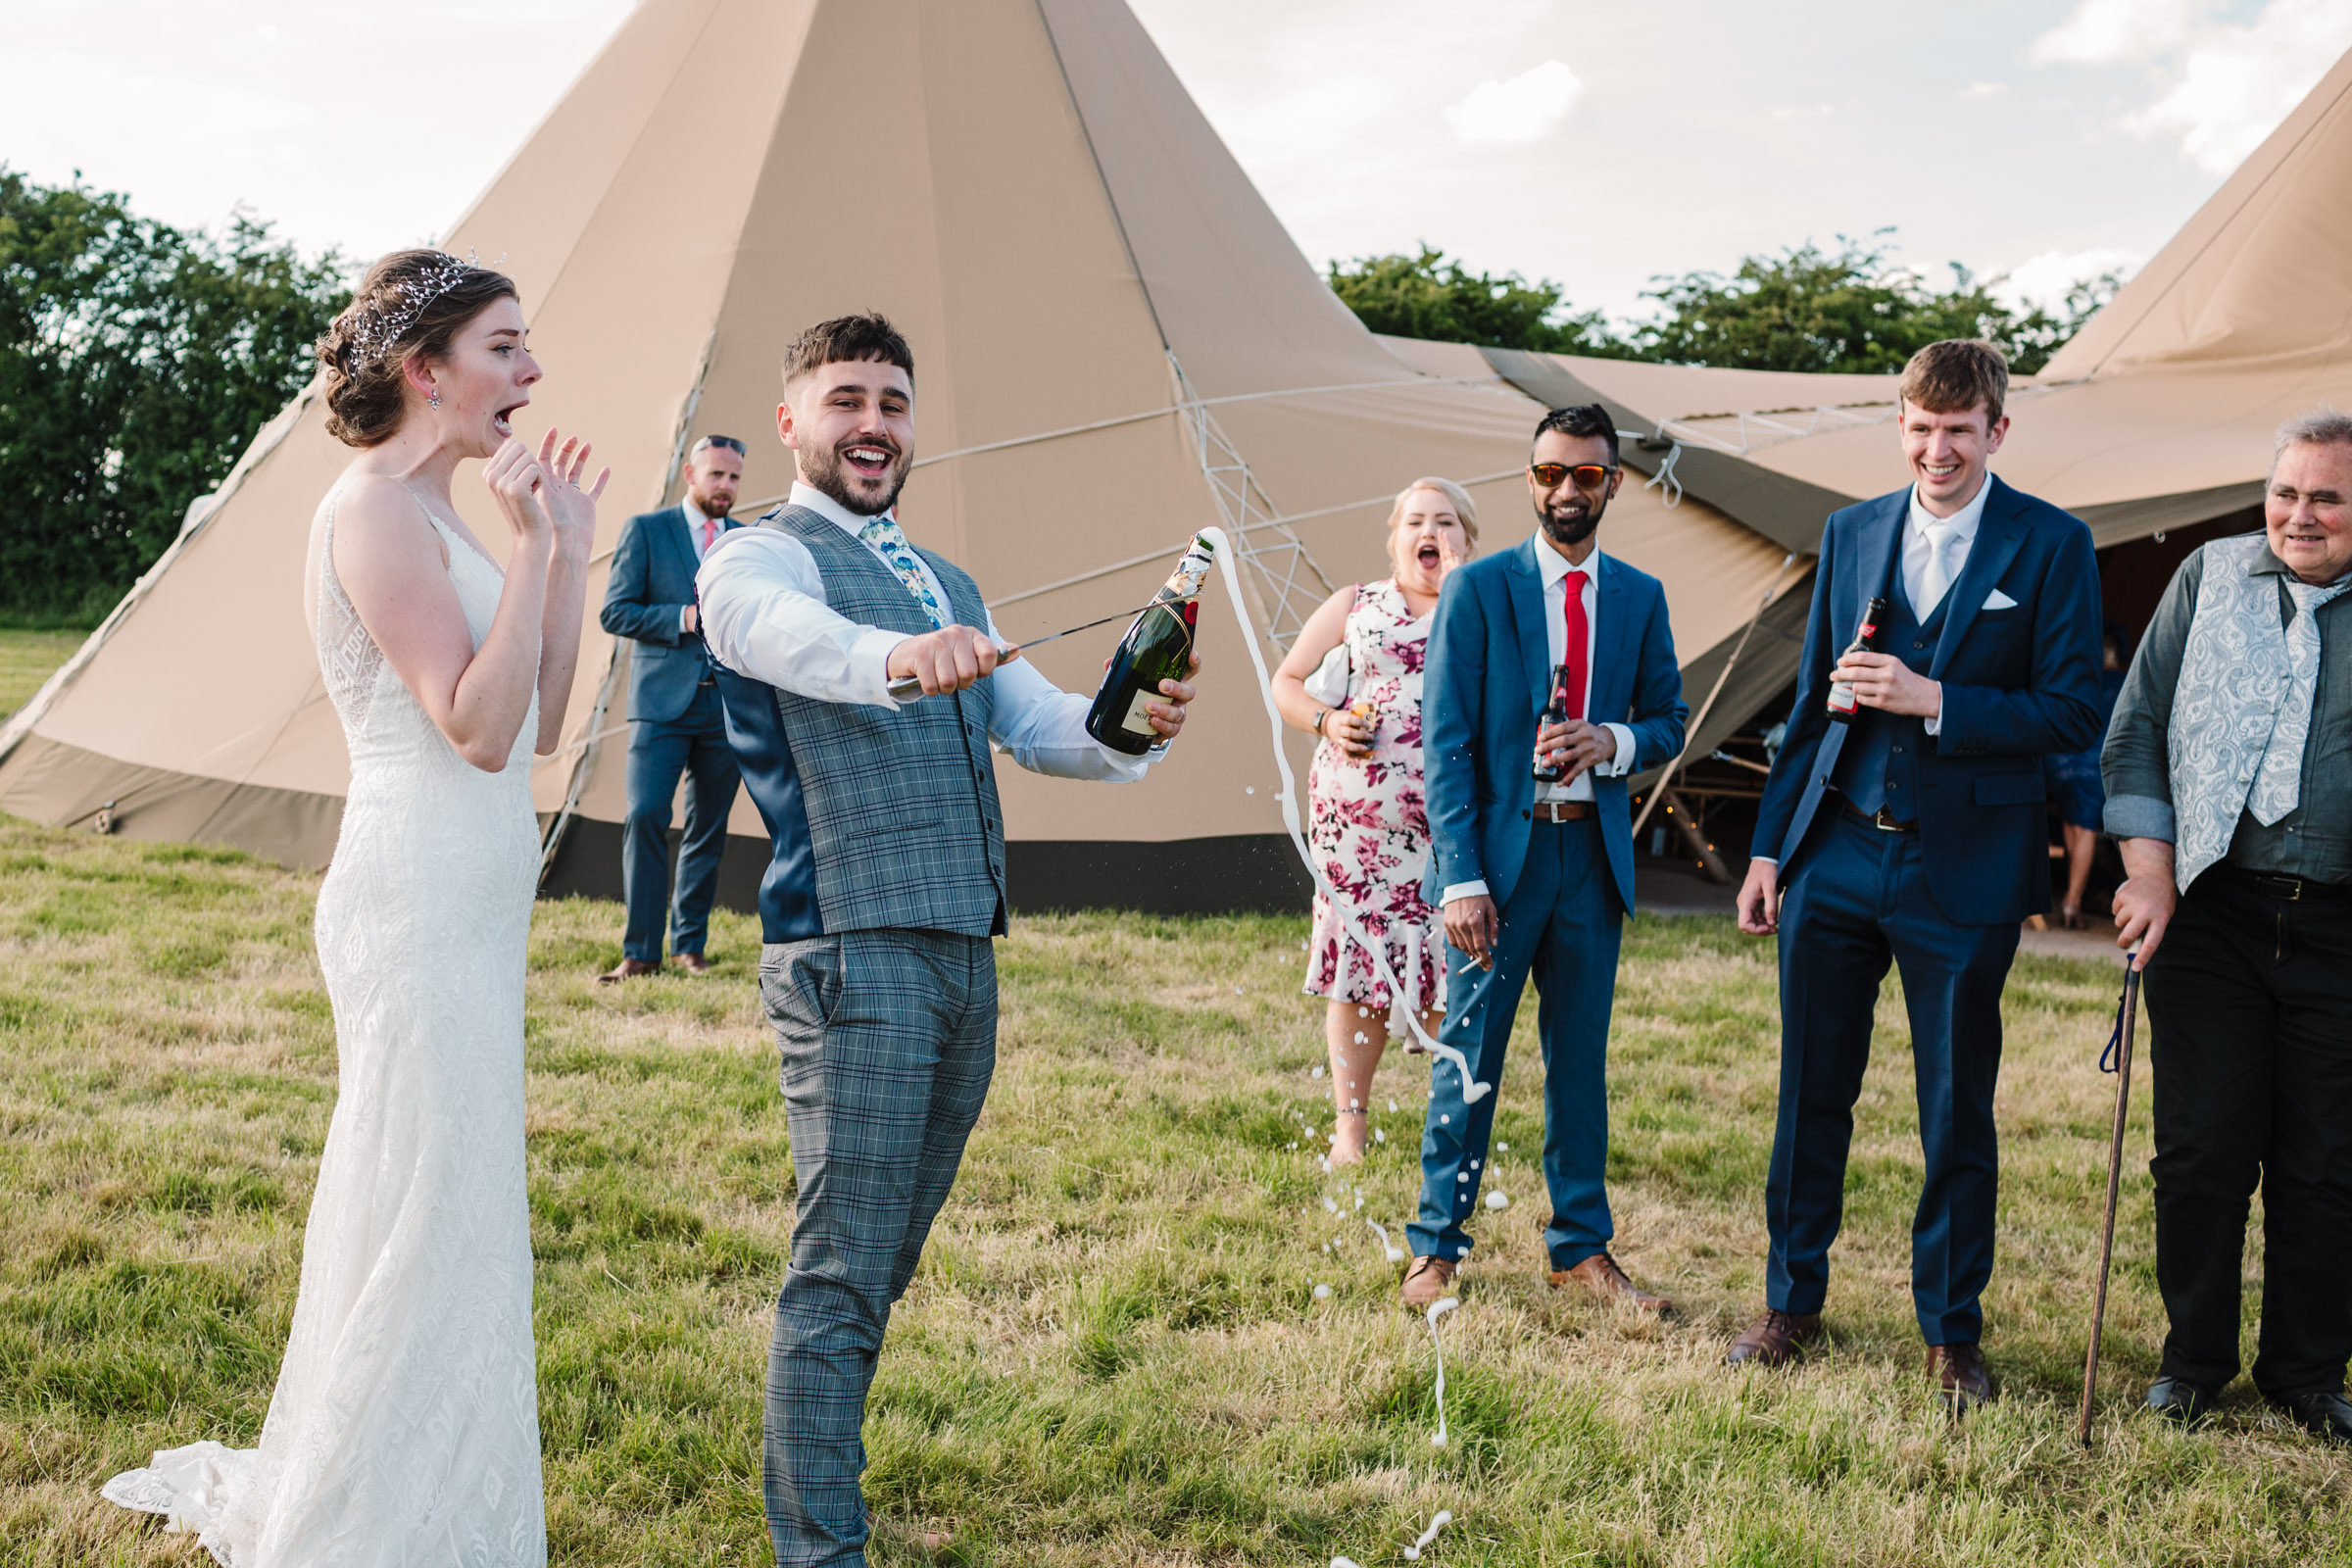 Groom slicing off the top of champagne bottle with knife at outdoor tipi wedding